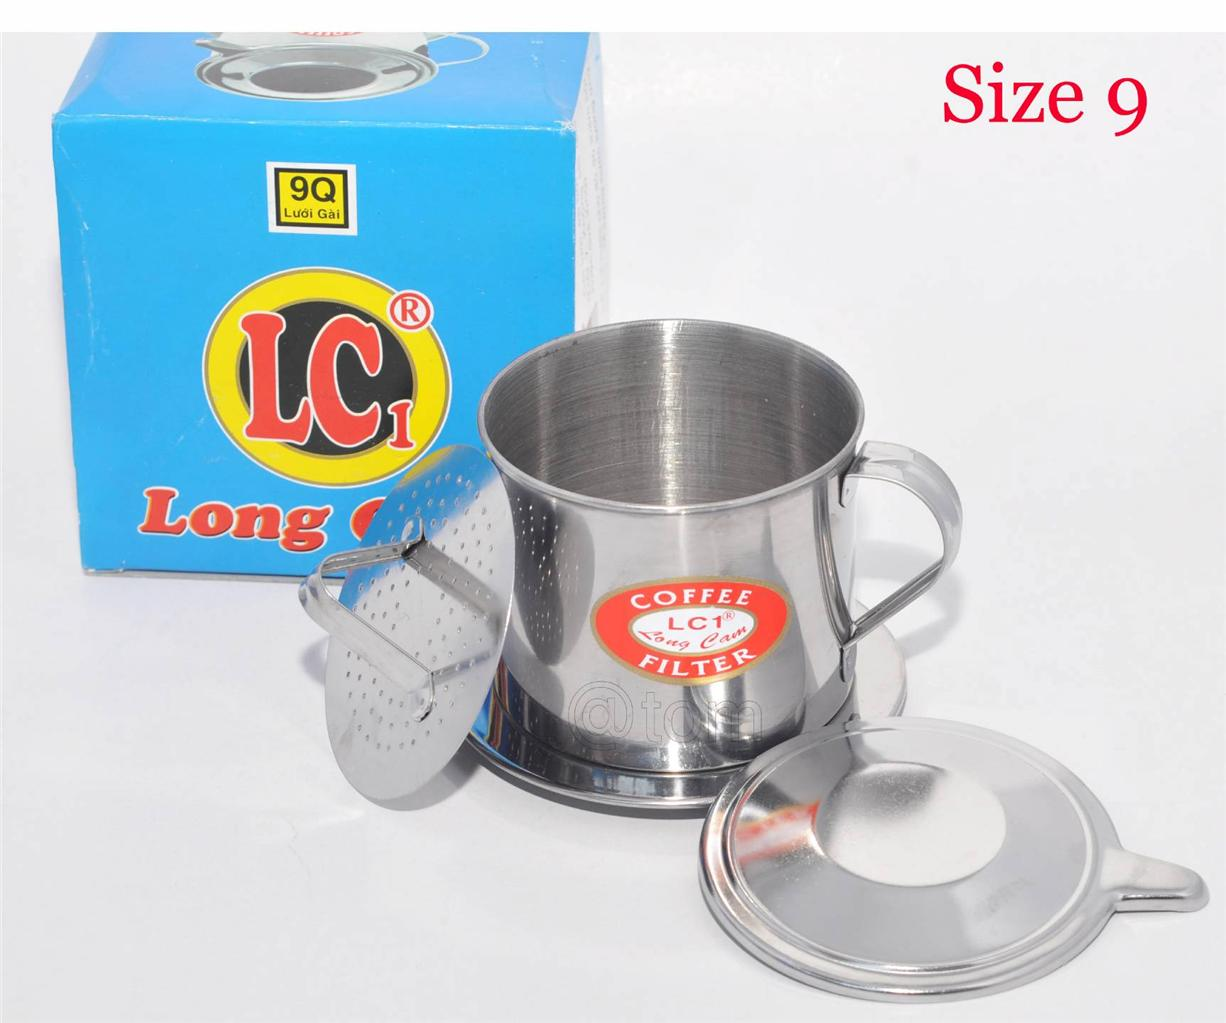 Vietnamese Coffee Filter Press Maker - High Quality Stainless Steel - Big Size 9 eBay